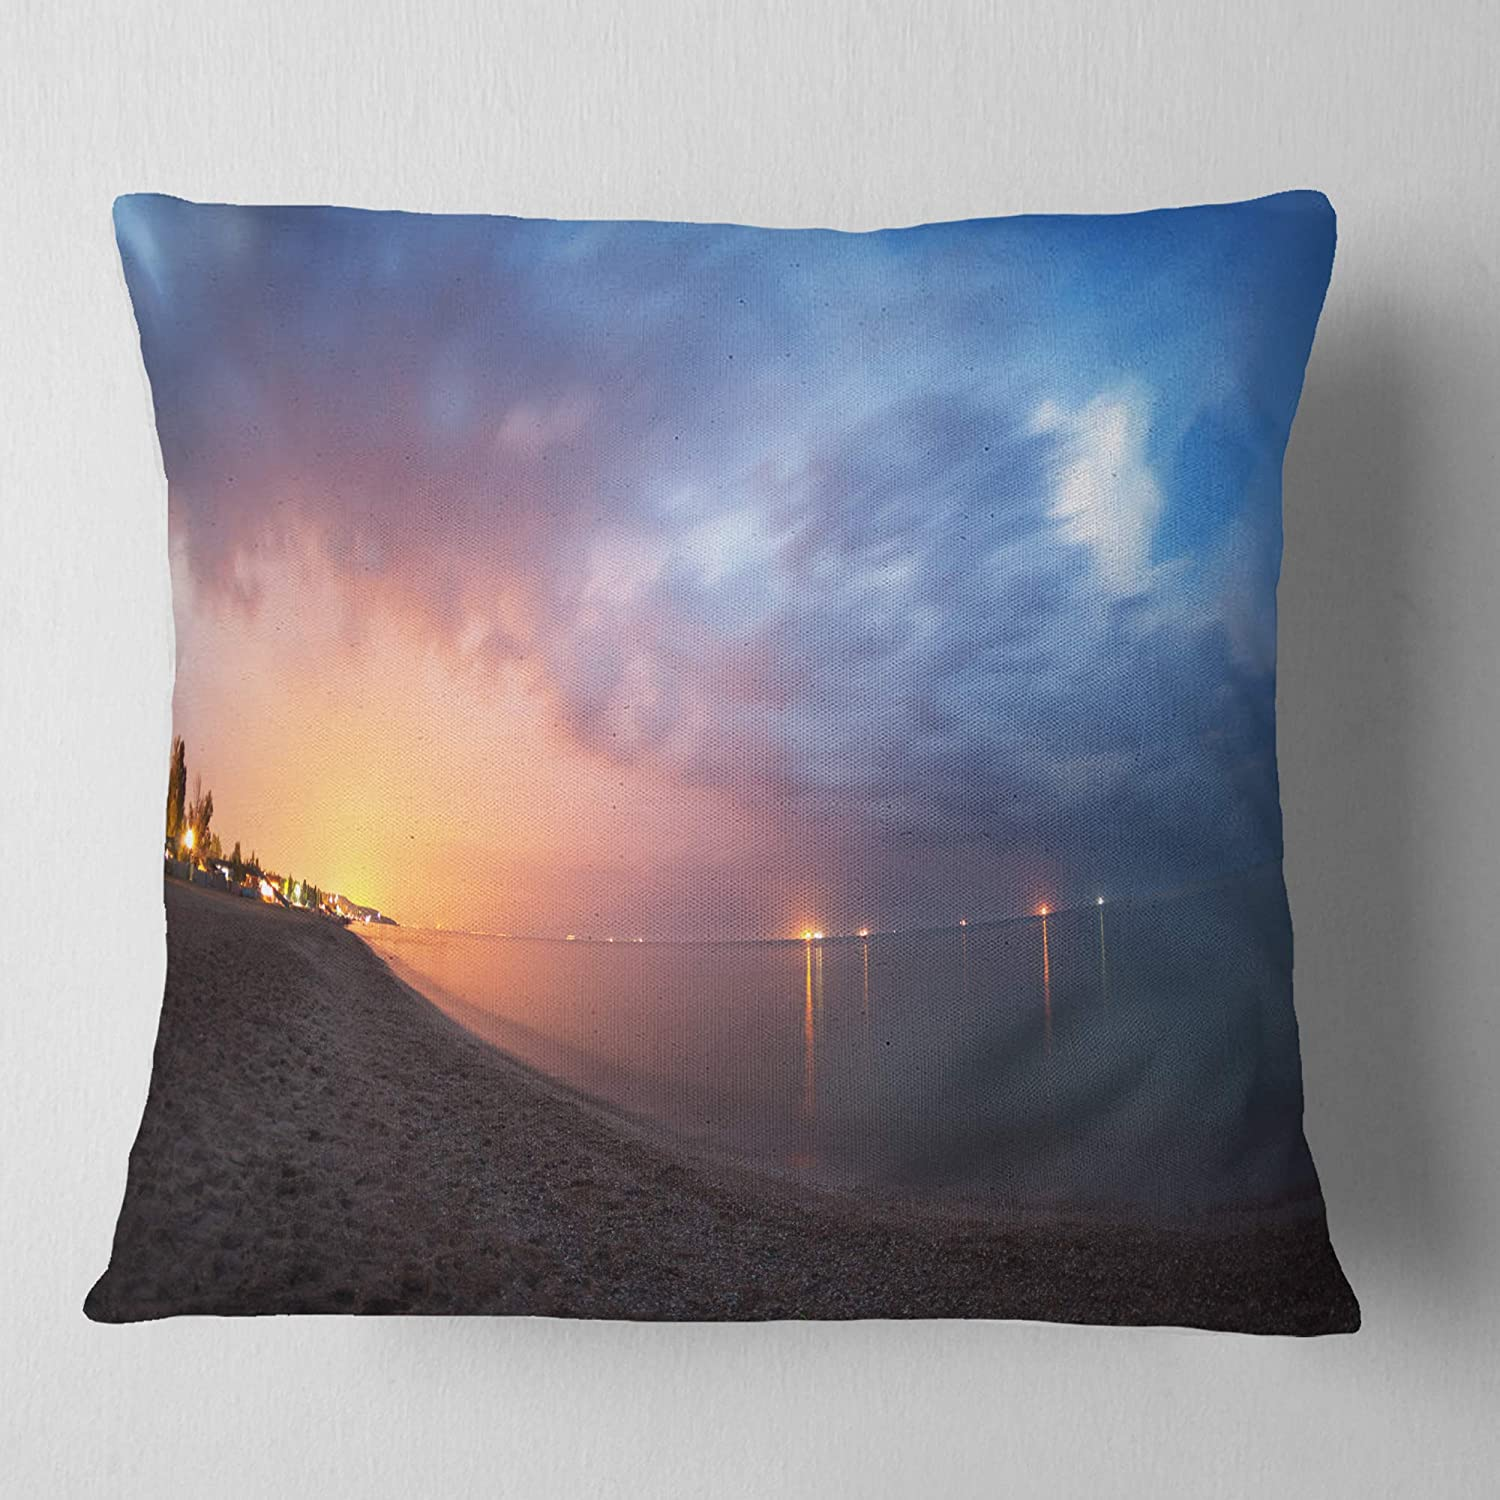 X 26 In In Designart Cu9353 26 26 Summer Night With Blue Sky Skyline Photography Cushion Cover For Living Room Sofa Throw Pillow 26 In Decorative Pillows Inserts Covers Throw Pillow Covers